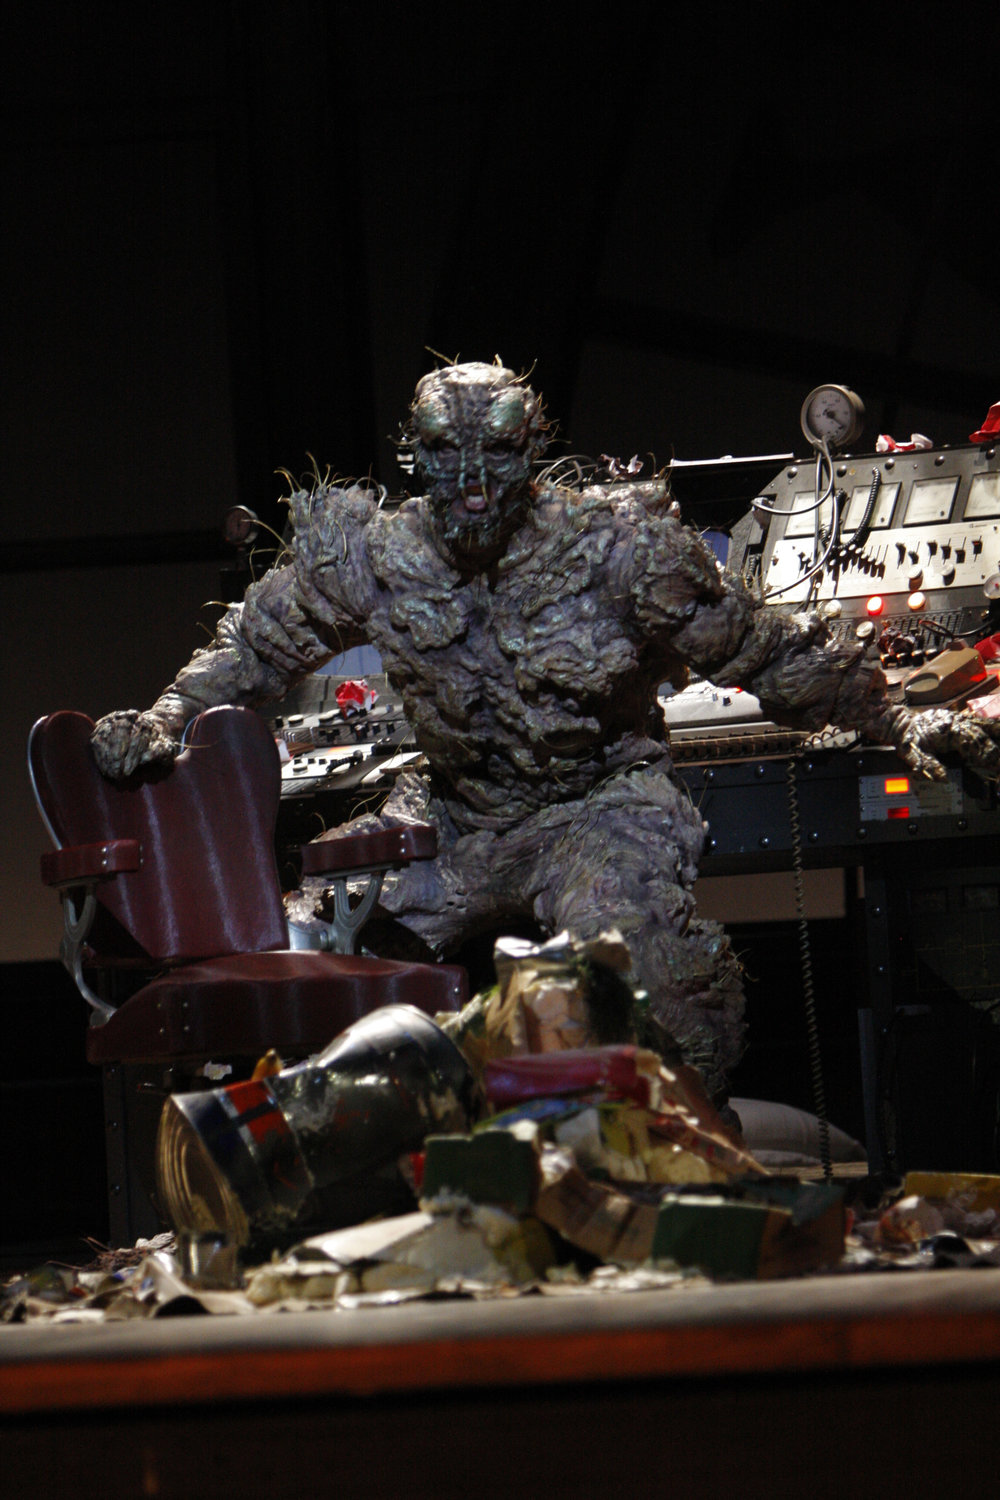 Daniel Okulitch as Seth Brundle in The Fly. Photo by Robert Millard for the Los Angeles Opera, 2008